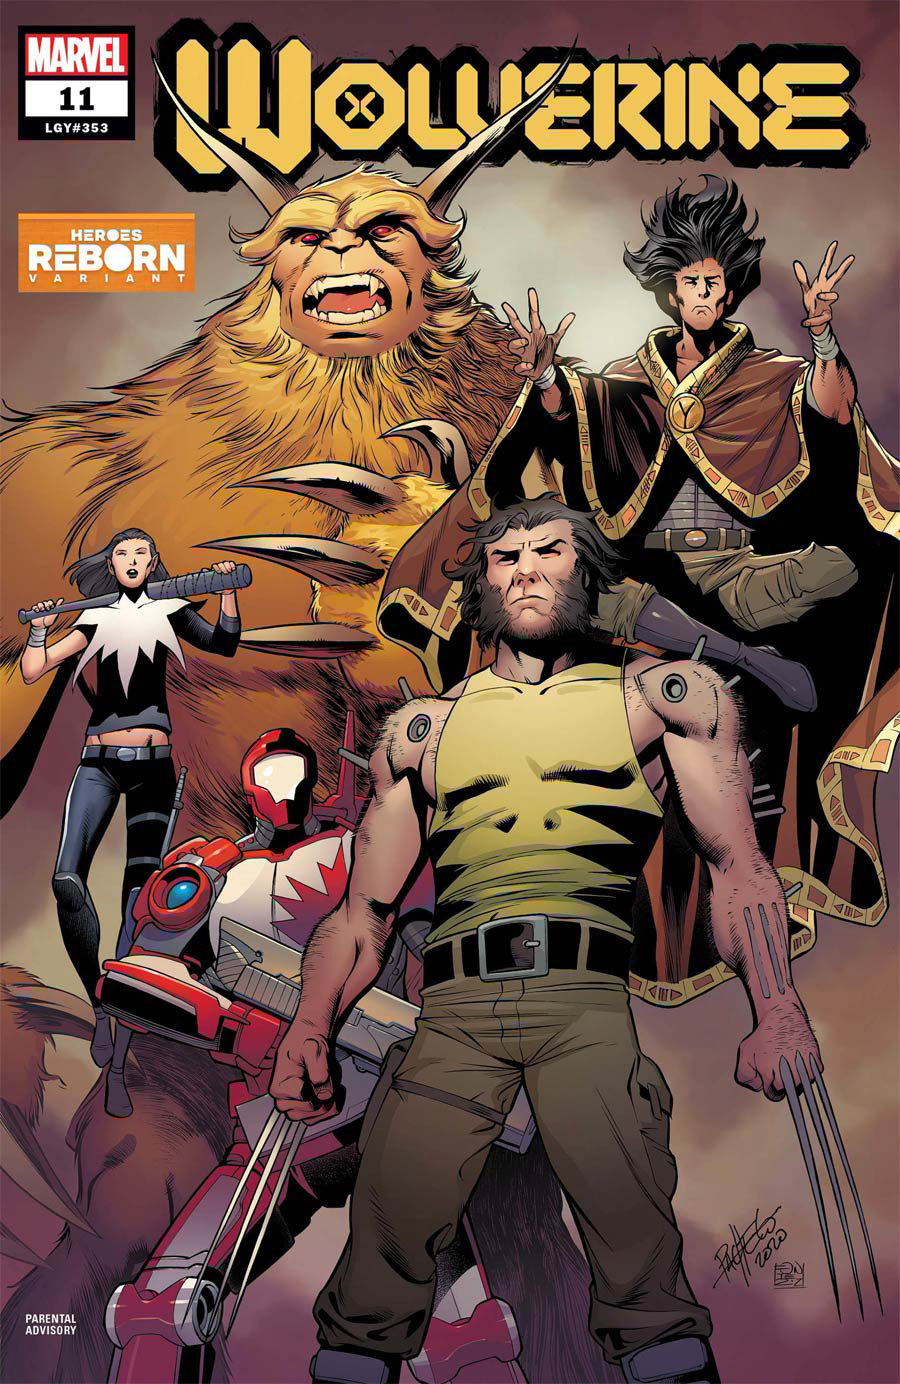 Wolverine Vol 7 #11 Cover B Variant Carlos Pacheco Heroes Reborn Cover